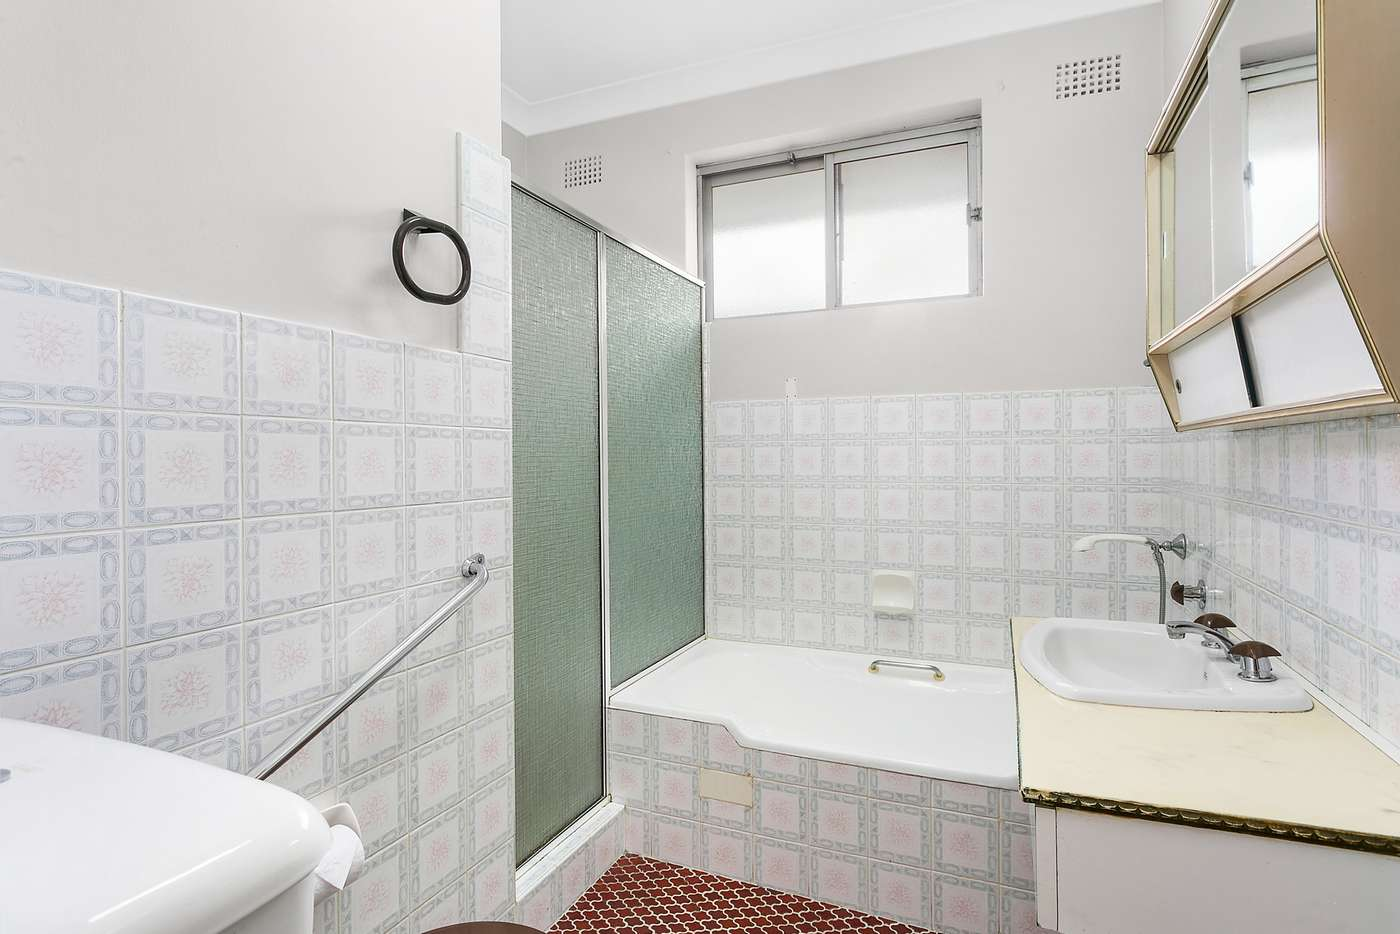 Sixth view of Homely apartment listing, 8/61 Garfield Street, Five Dock NSW 2046